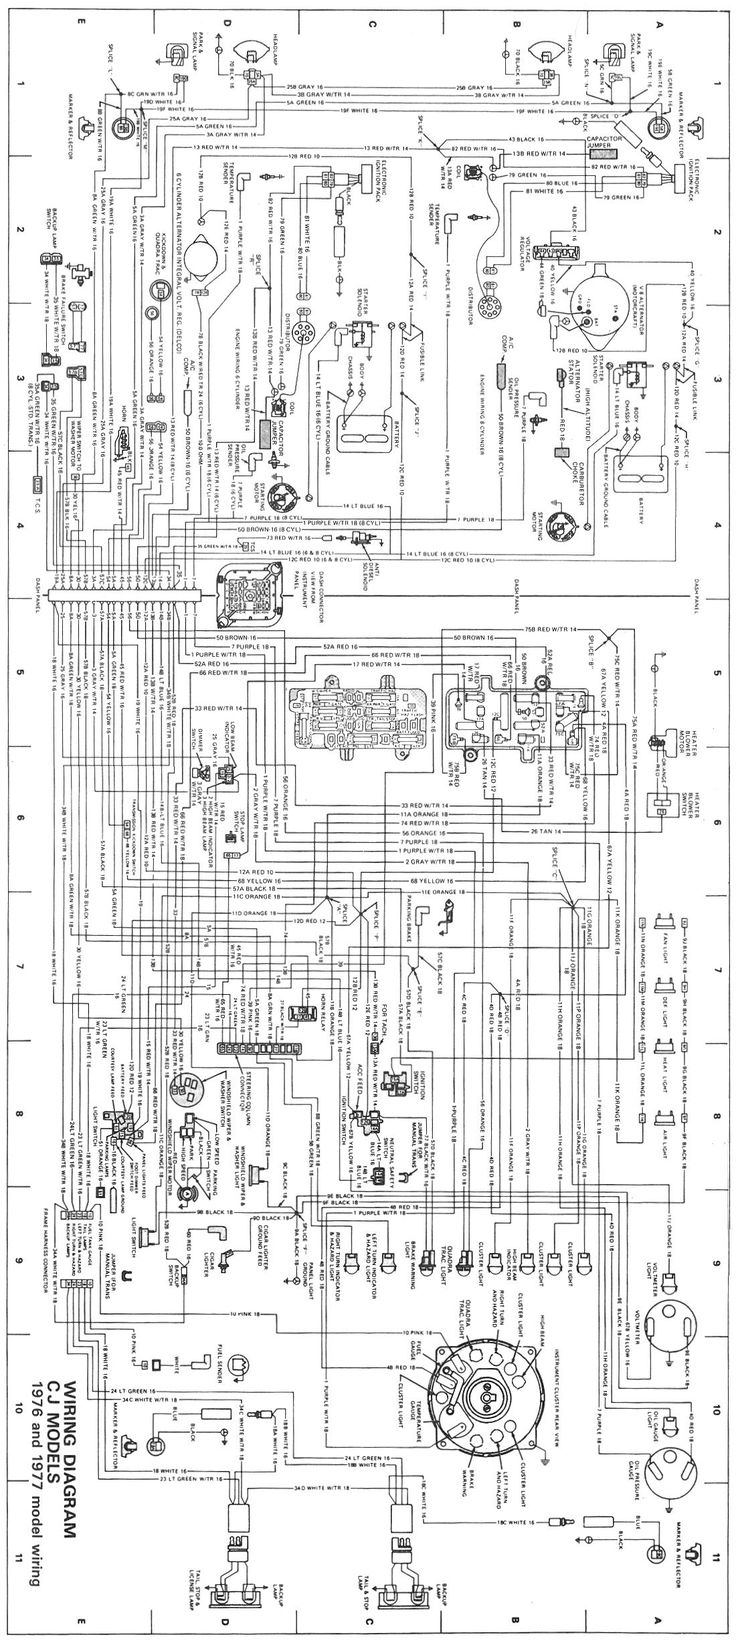 8d25ded6e3673519e155875e09844e5e jeep cj jeep stuff 74 best 1976 jeep cj5 ideas, parts etc images on pinterest jeeps 1986 jeep cj7 wiring diagram at creativeand.co